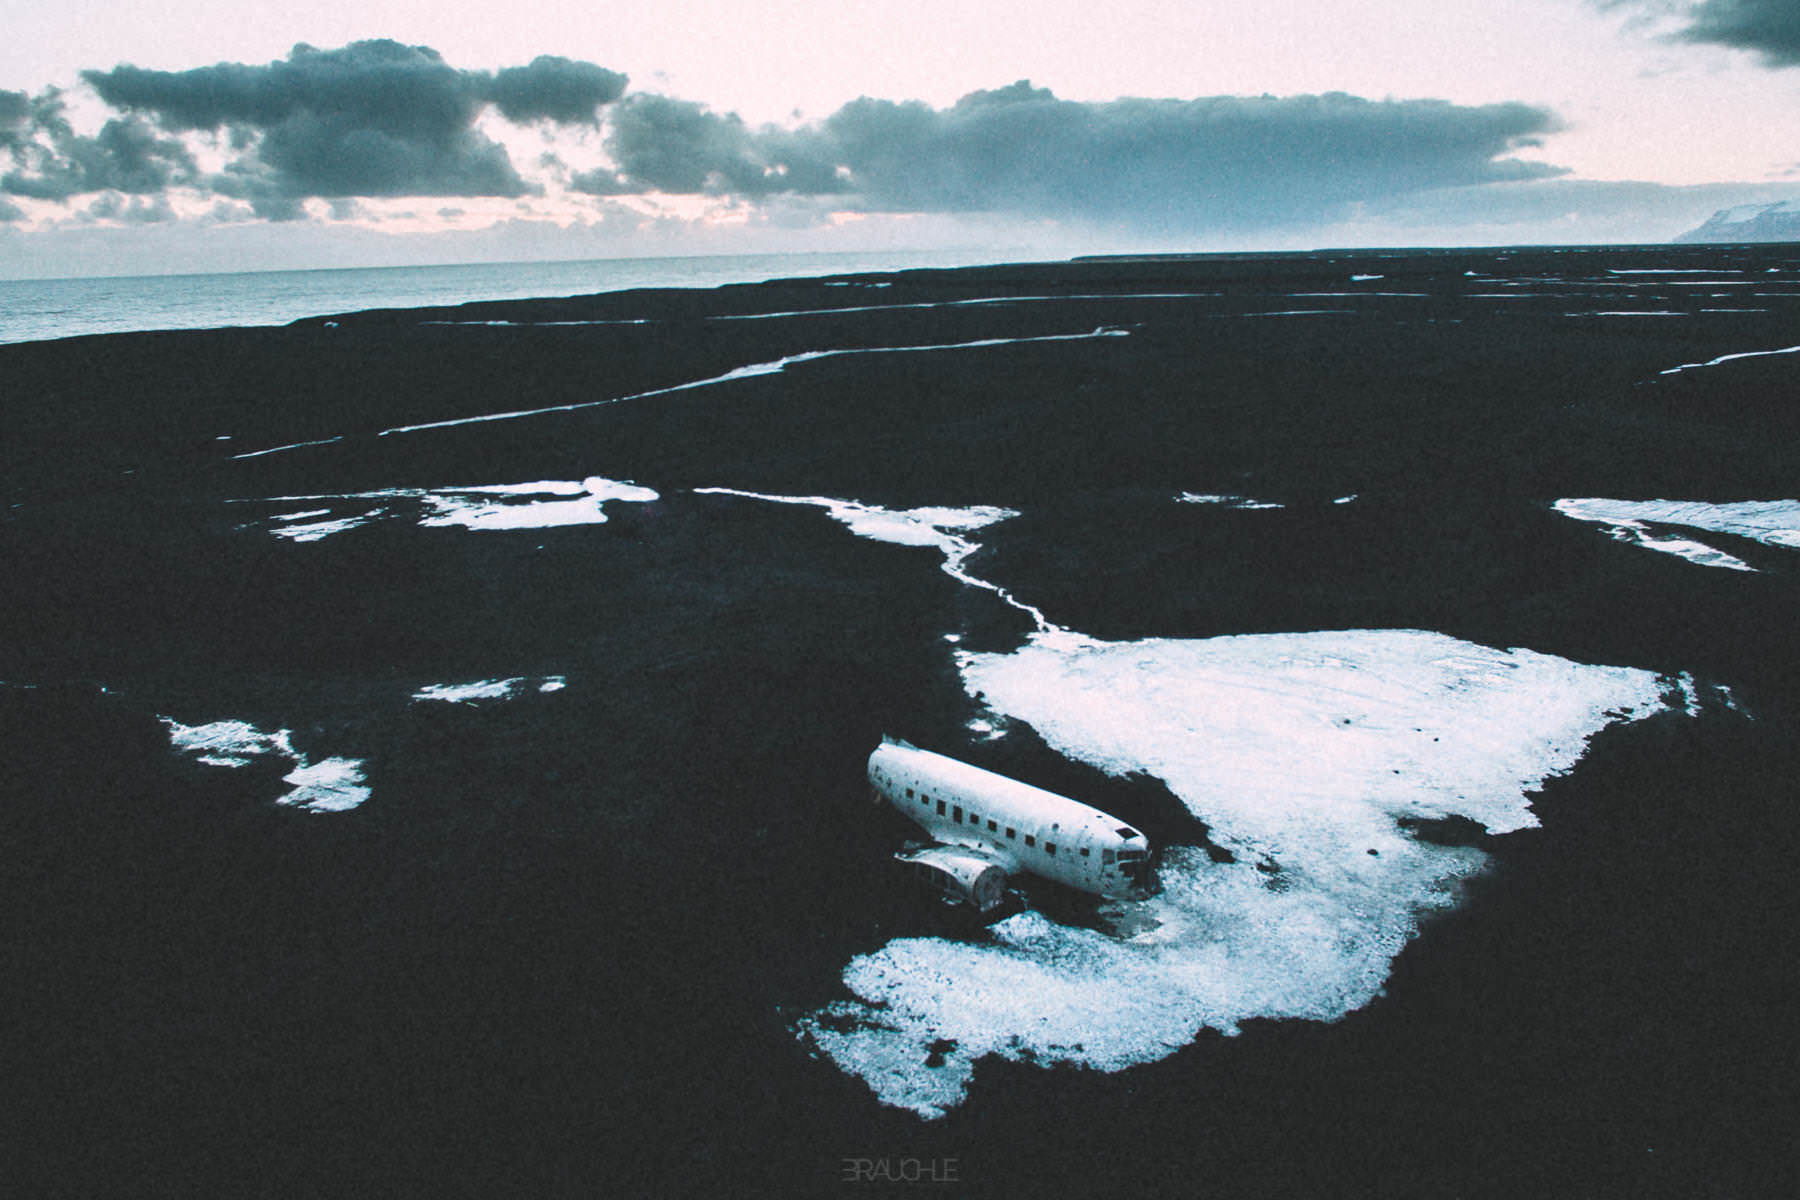 iceland-airplane-wreck-dc3-drone-0003